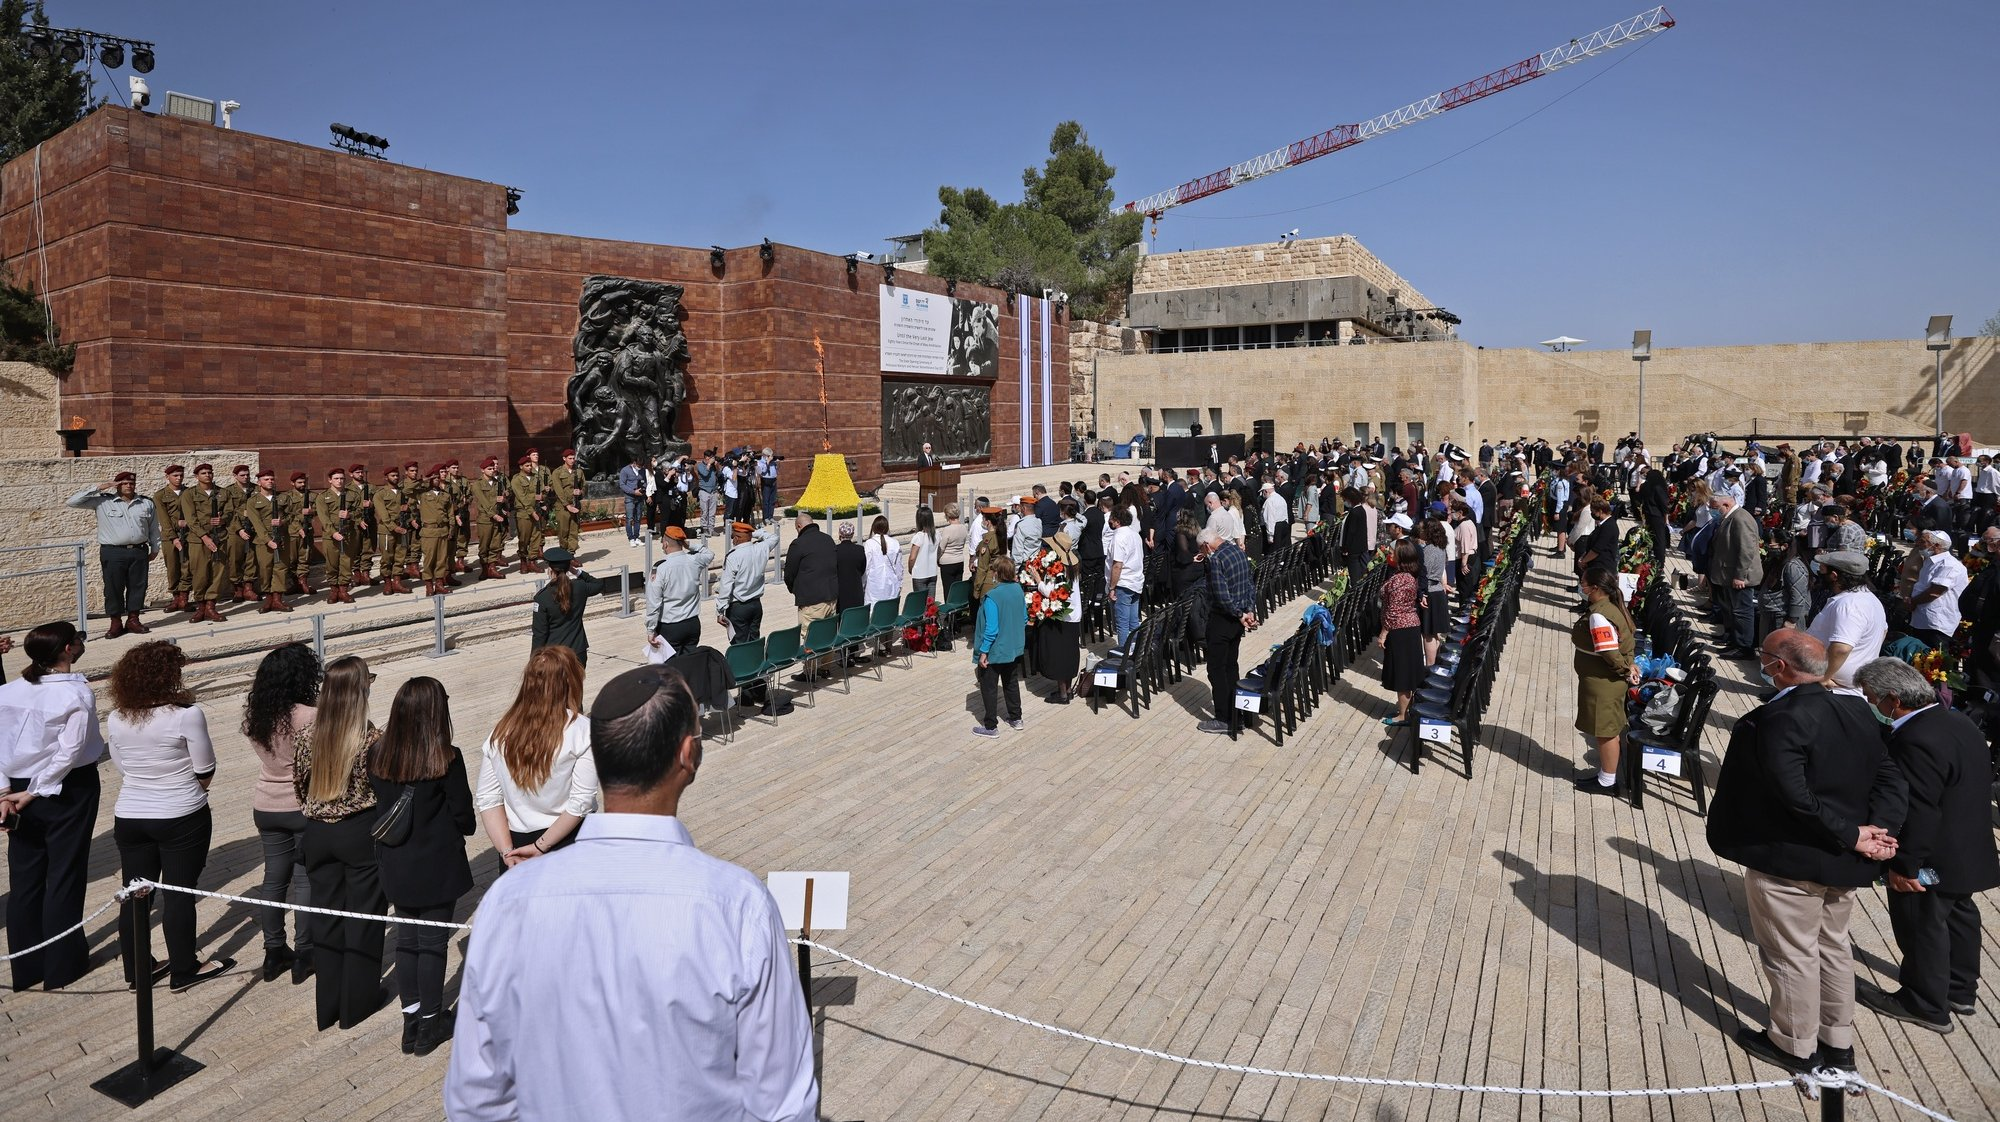 epa09121793 A general view shows a wreath-laying ceremony marking the Holocaust Remembrance Day at Warsaw Ghetto Square in Jerusalem's Yad Vashem memorial on 08 April 2021.  EPA/EMMANUEL DUNAND / POOL